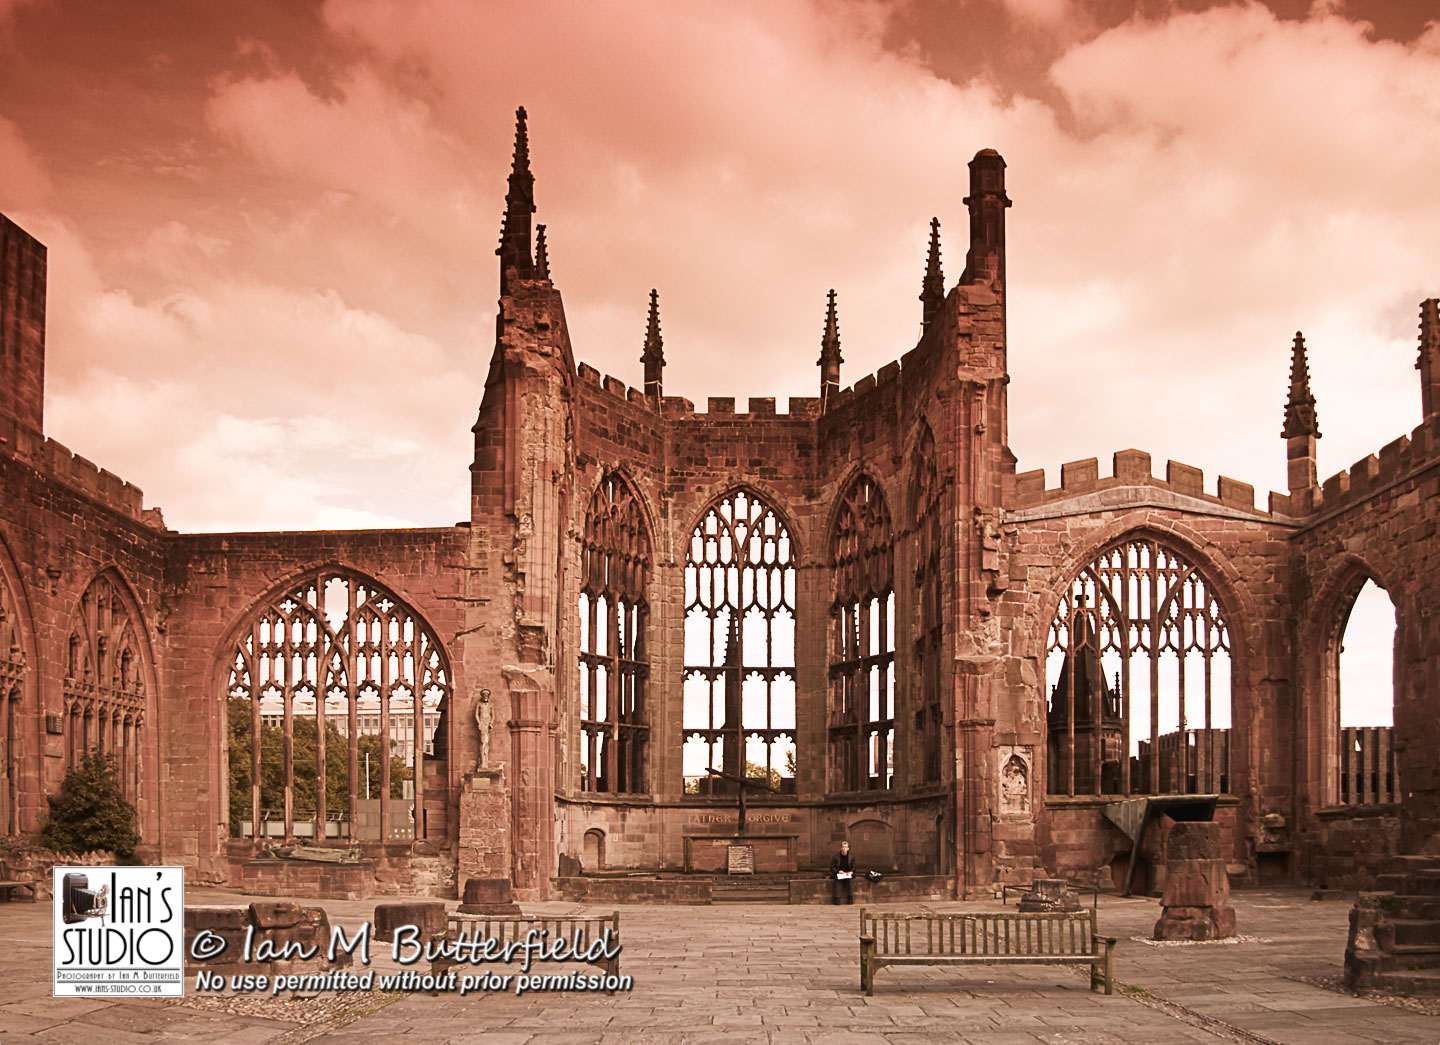 SALE 30 Oct 2017: The old Coventry Cathedral – SECOND Sale